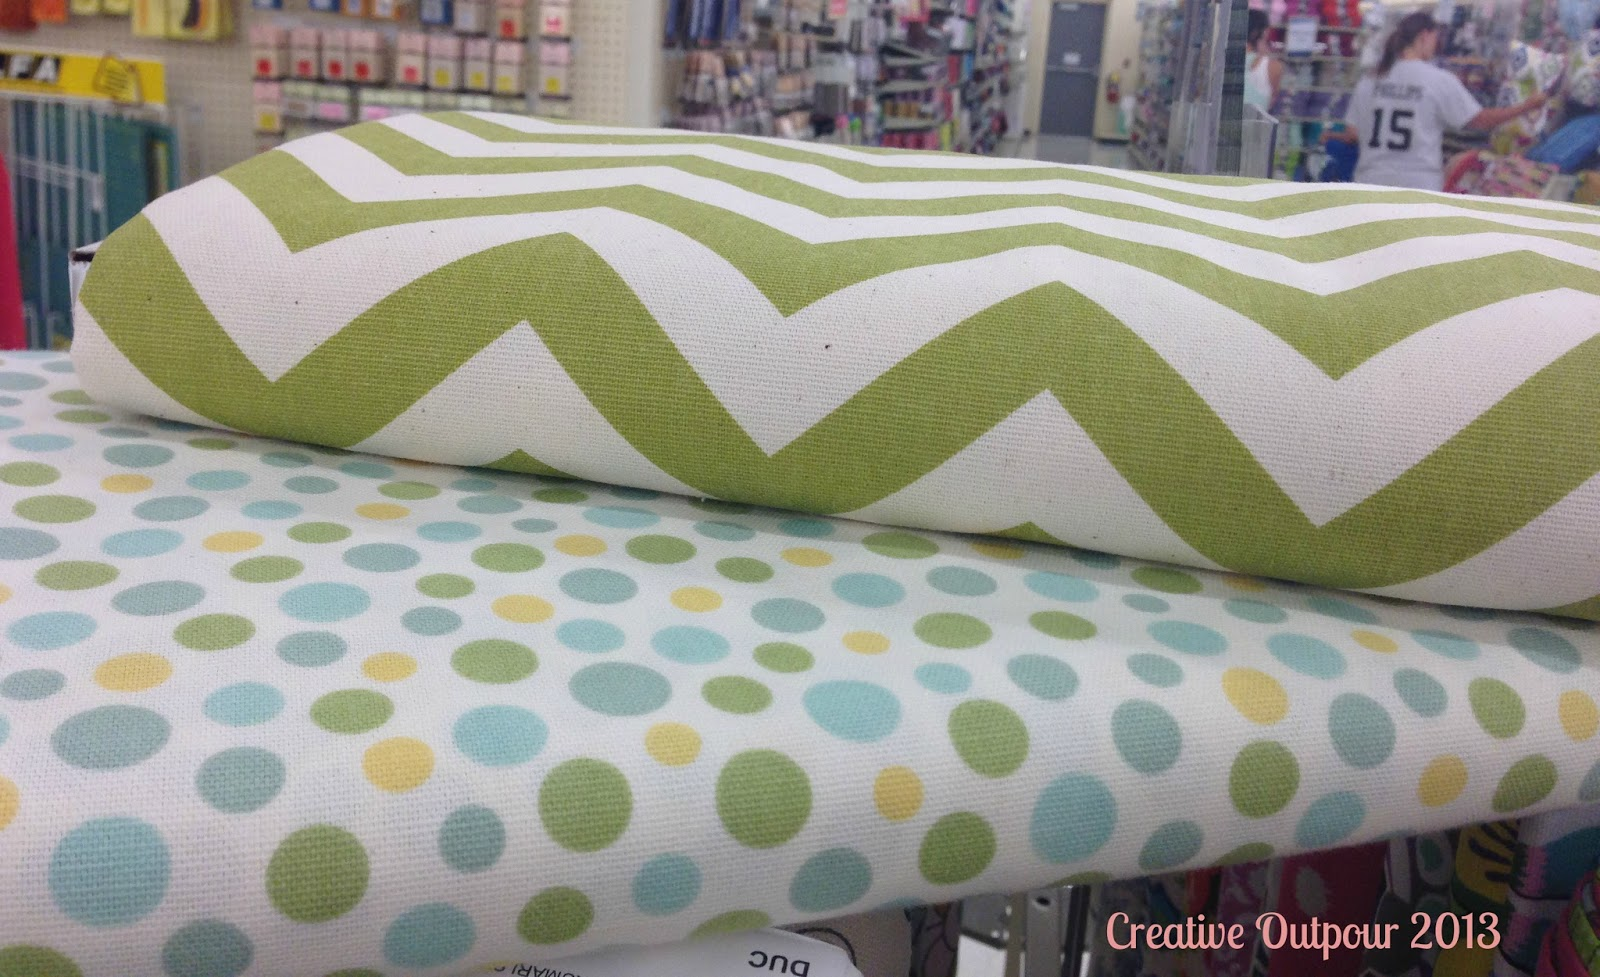 Huge Floor Pillows Part One - Creative Outpour